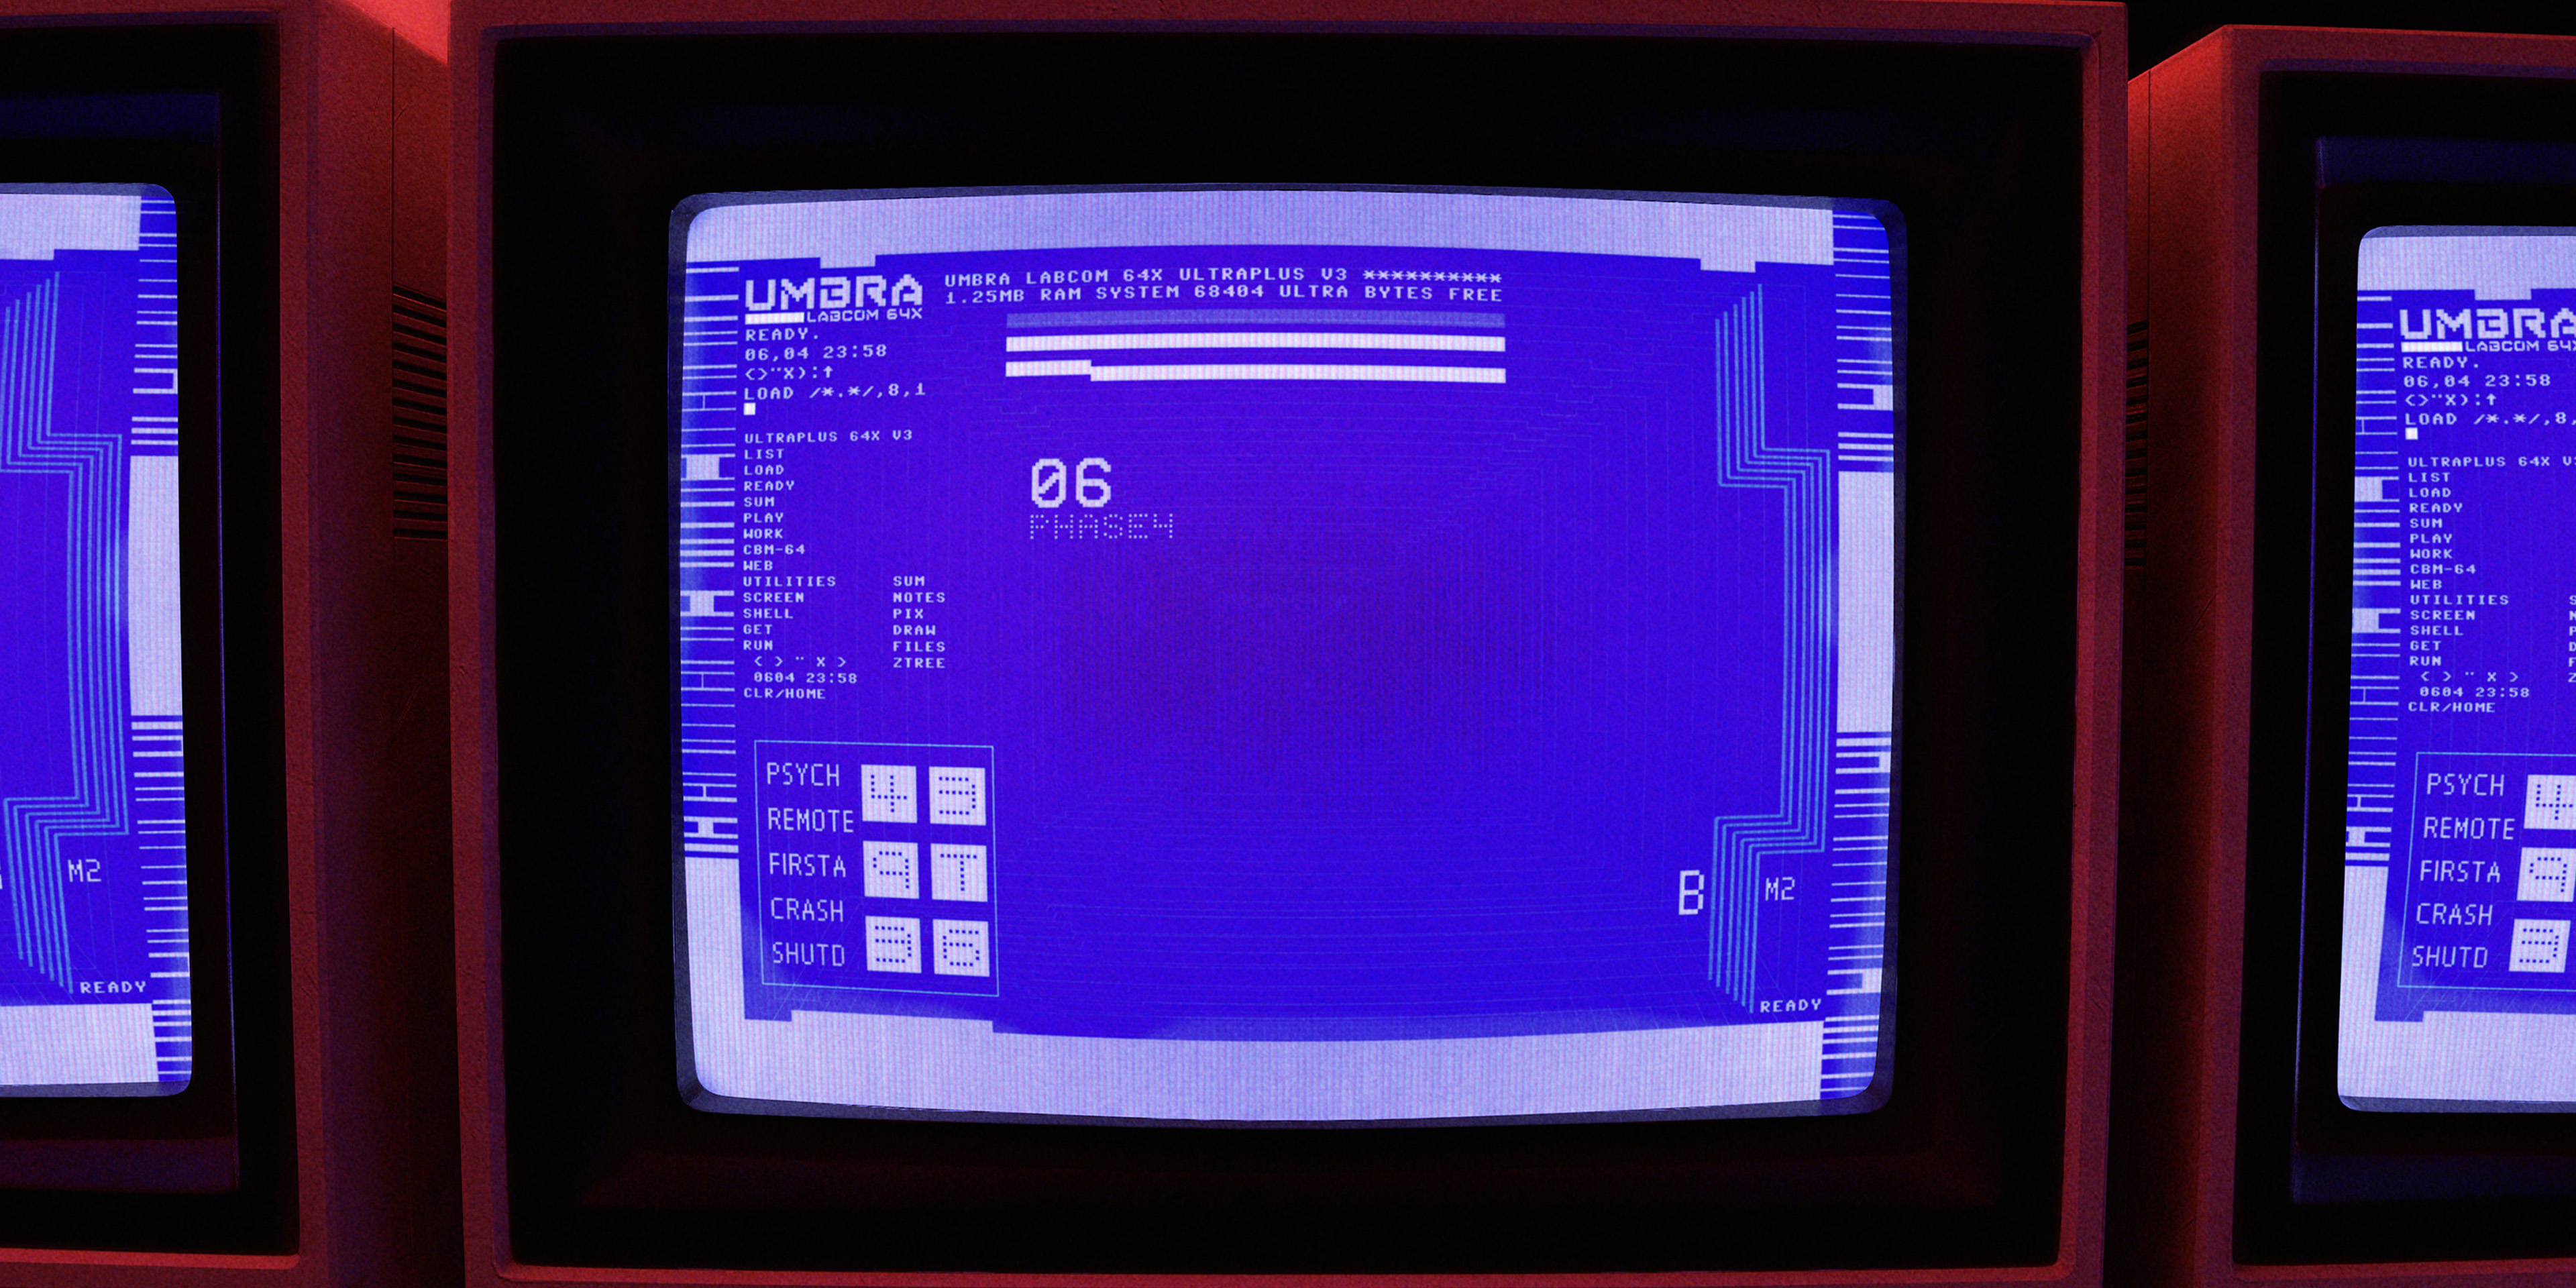 LABCOM-ScreenUI-01A-4KUnivis.jpg